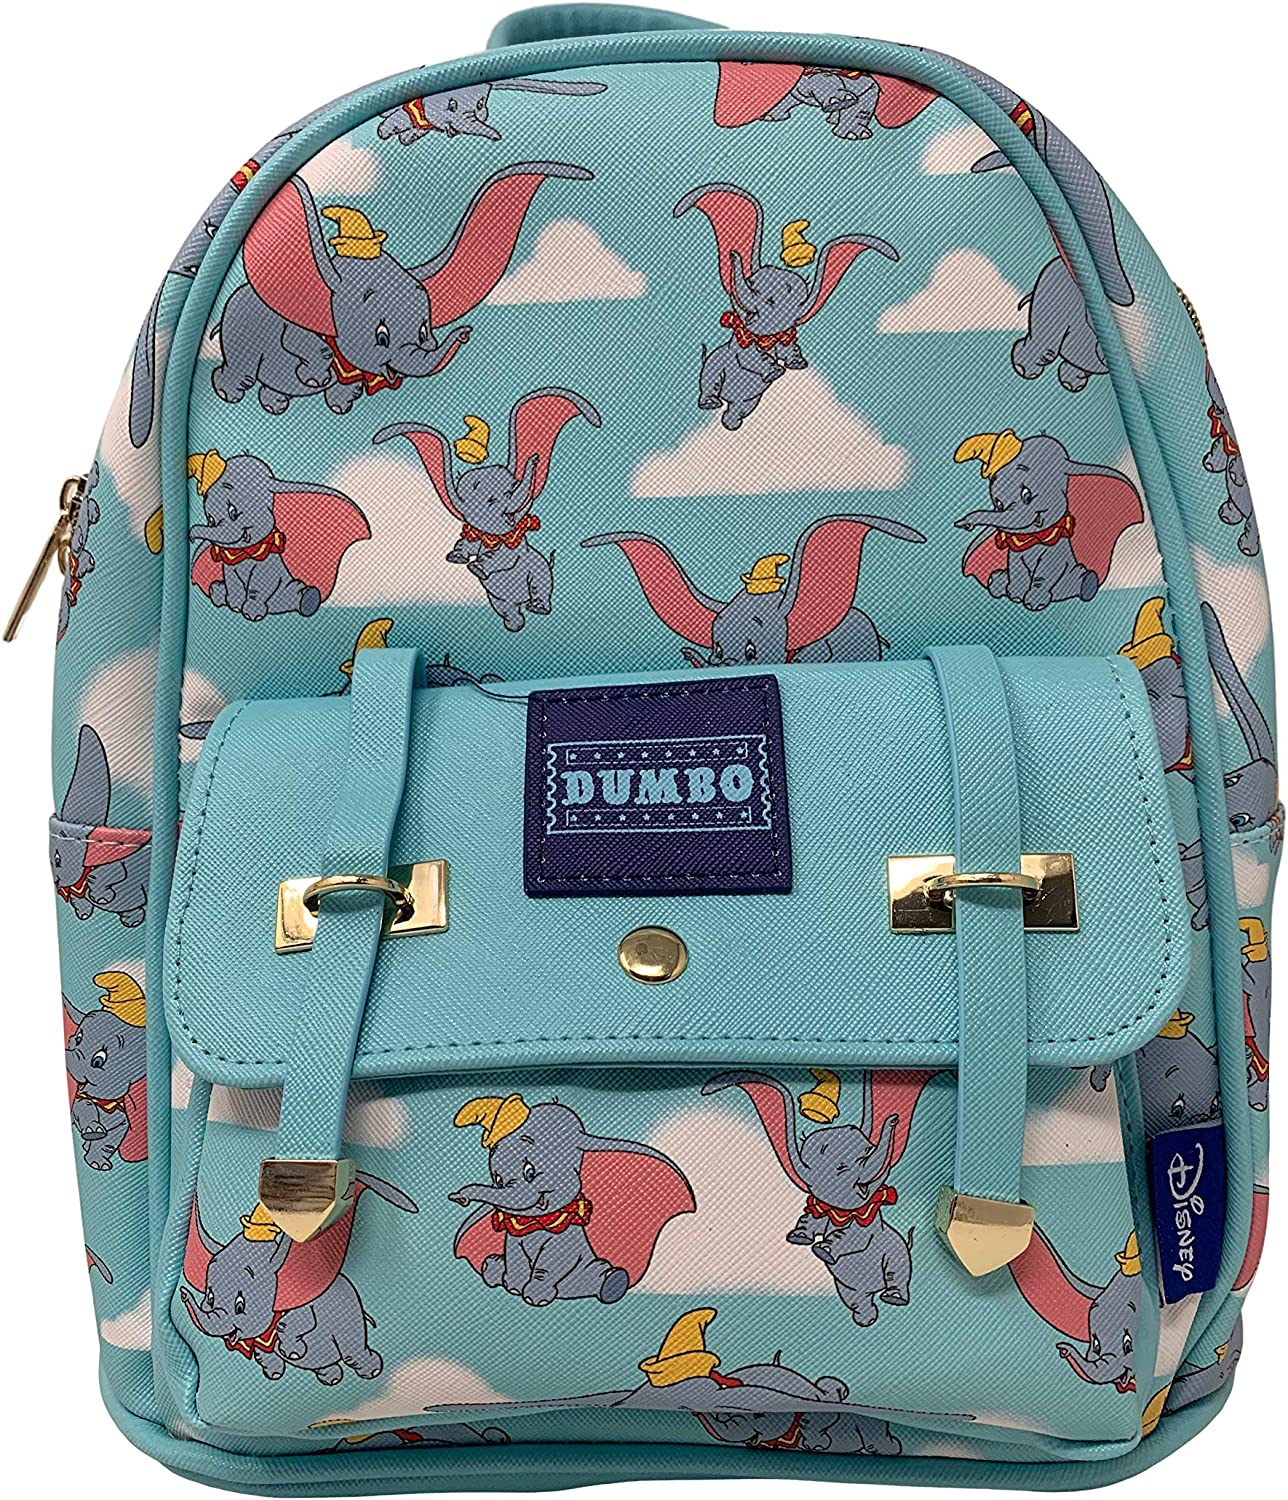 Deluxe Disney s Dumbo 11 Faux Leather Mini Backpack